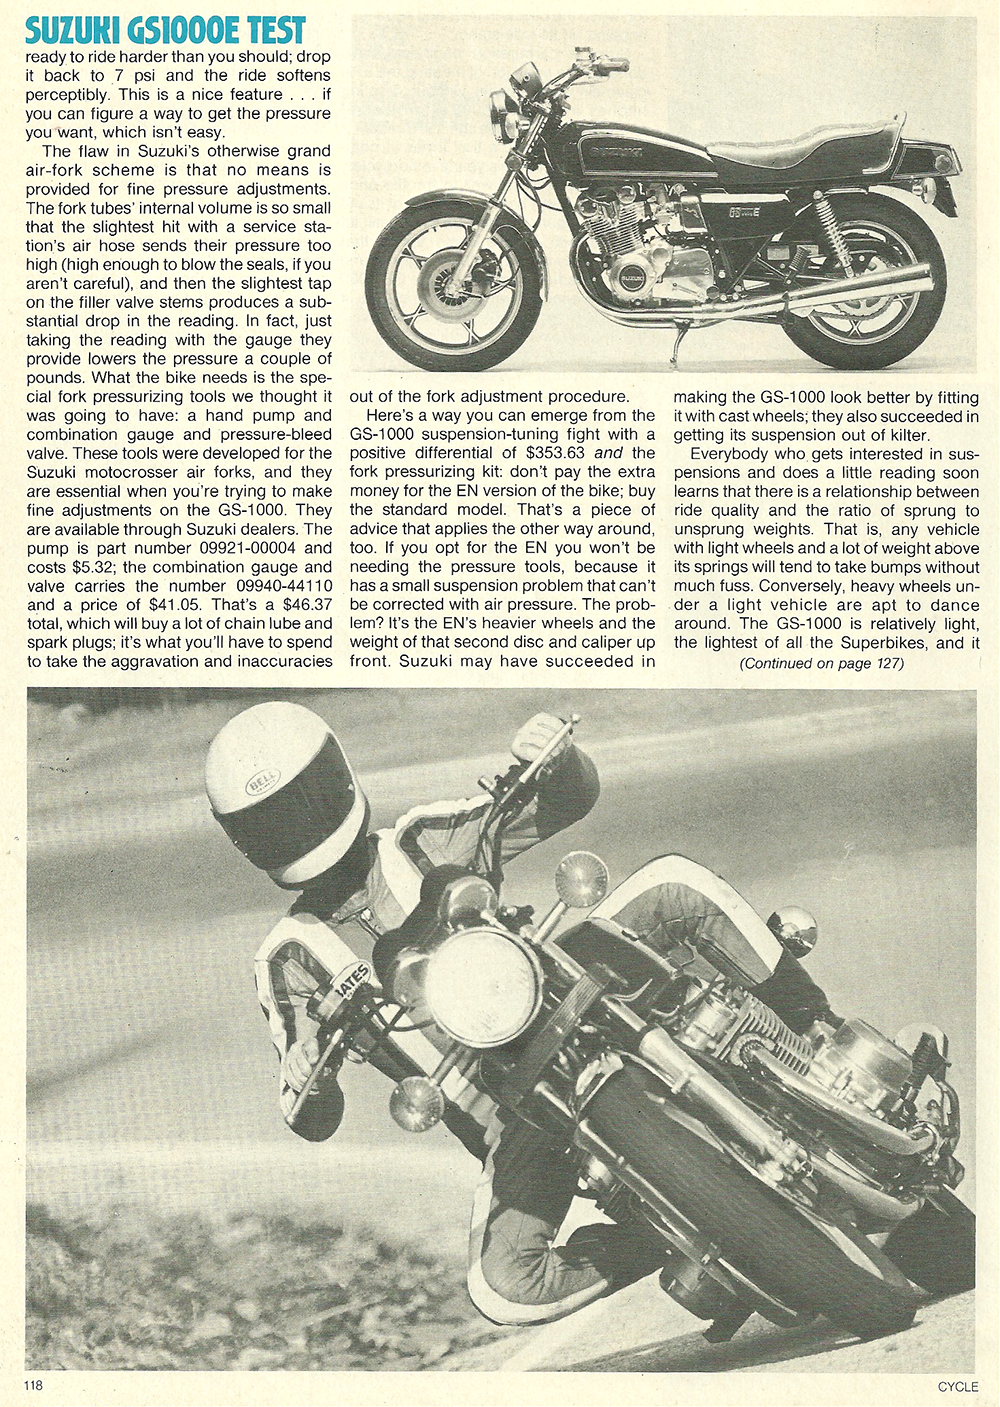 1979 Suzuki GS1000E road test 07.jpg